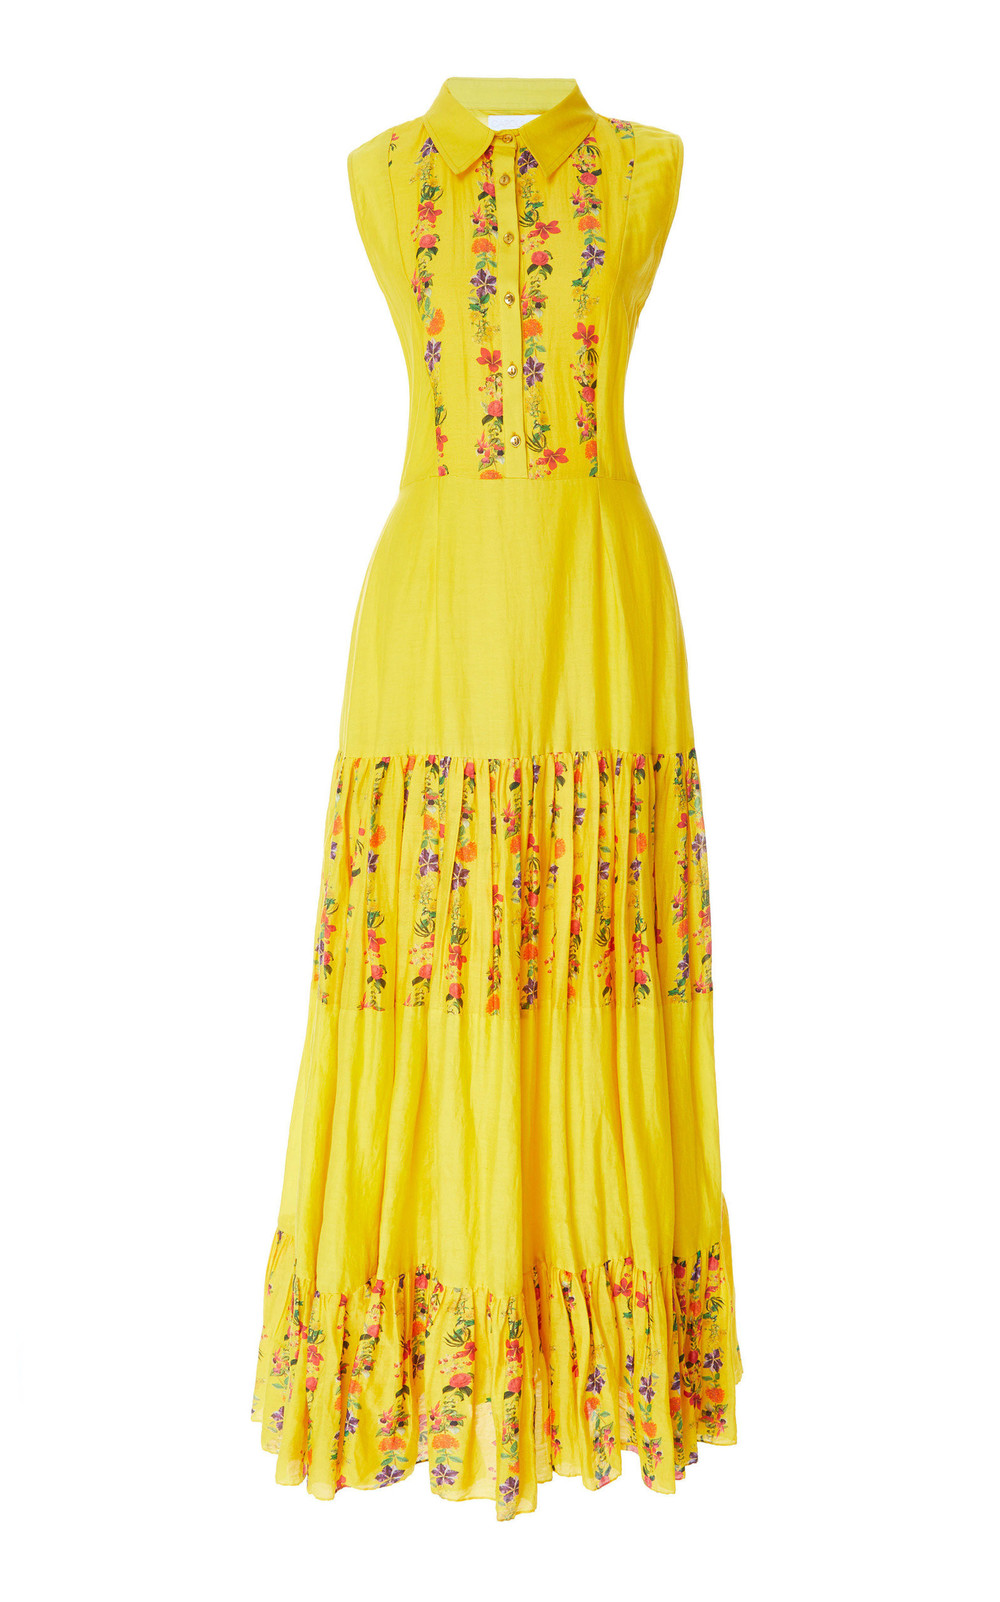 Carolina K Nia Pleated Floral Cotton-Blend Maxi Dress in yellow